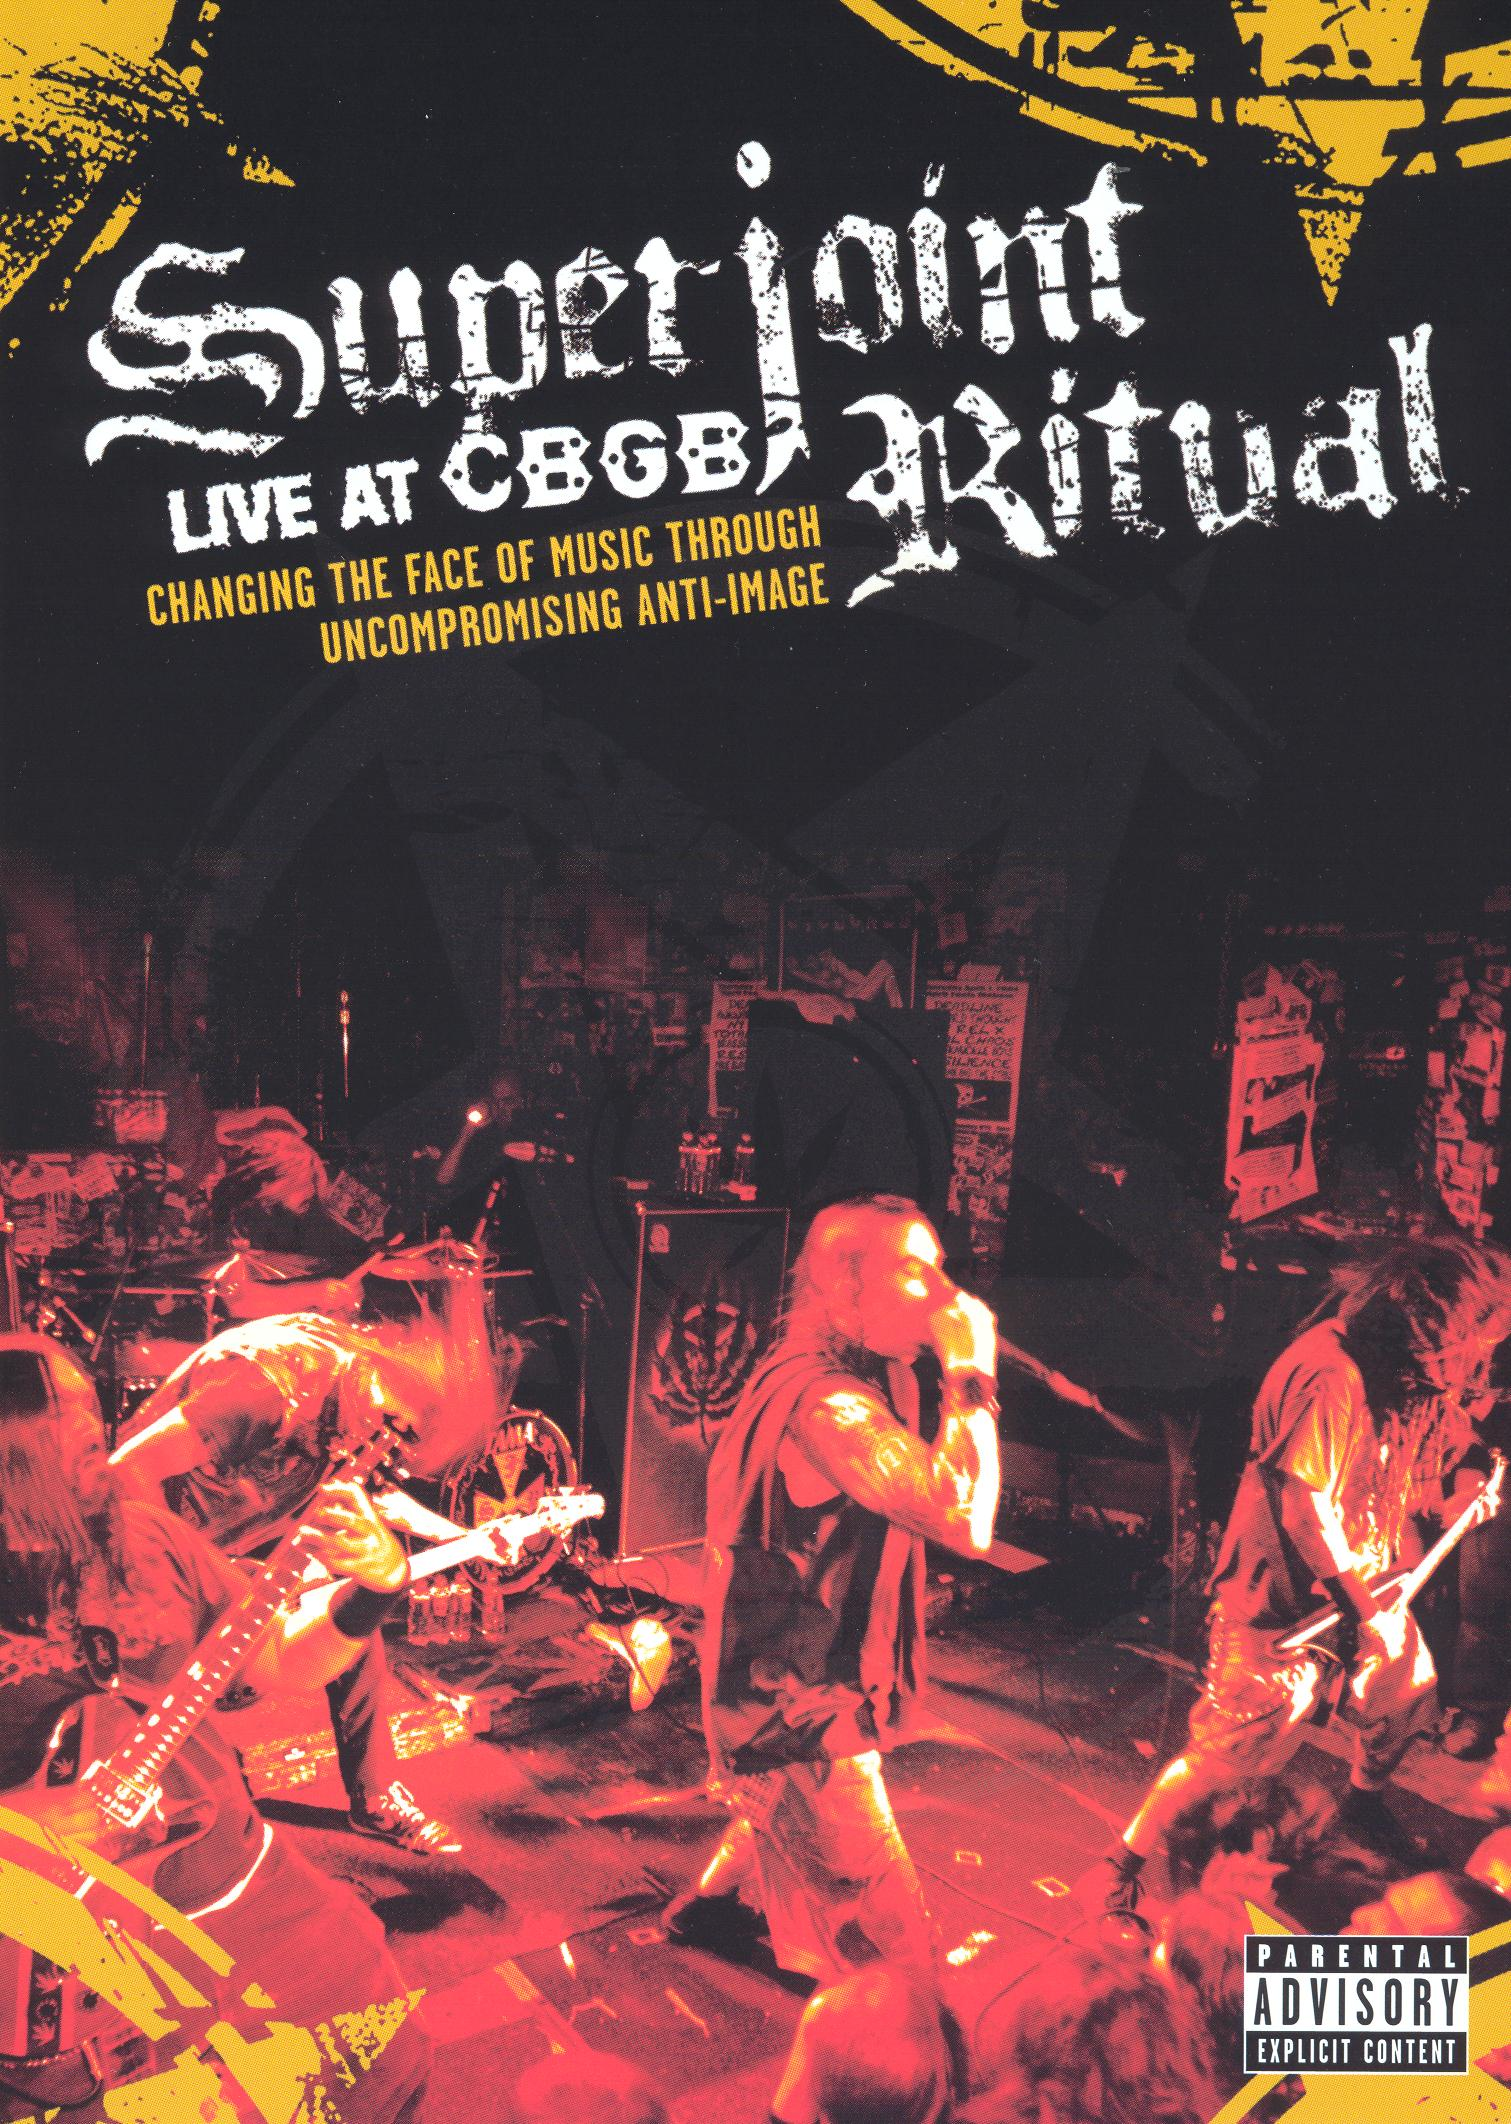 Superjoint Ritual: Live at CBGB 2004